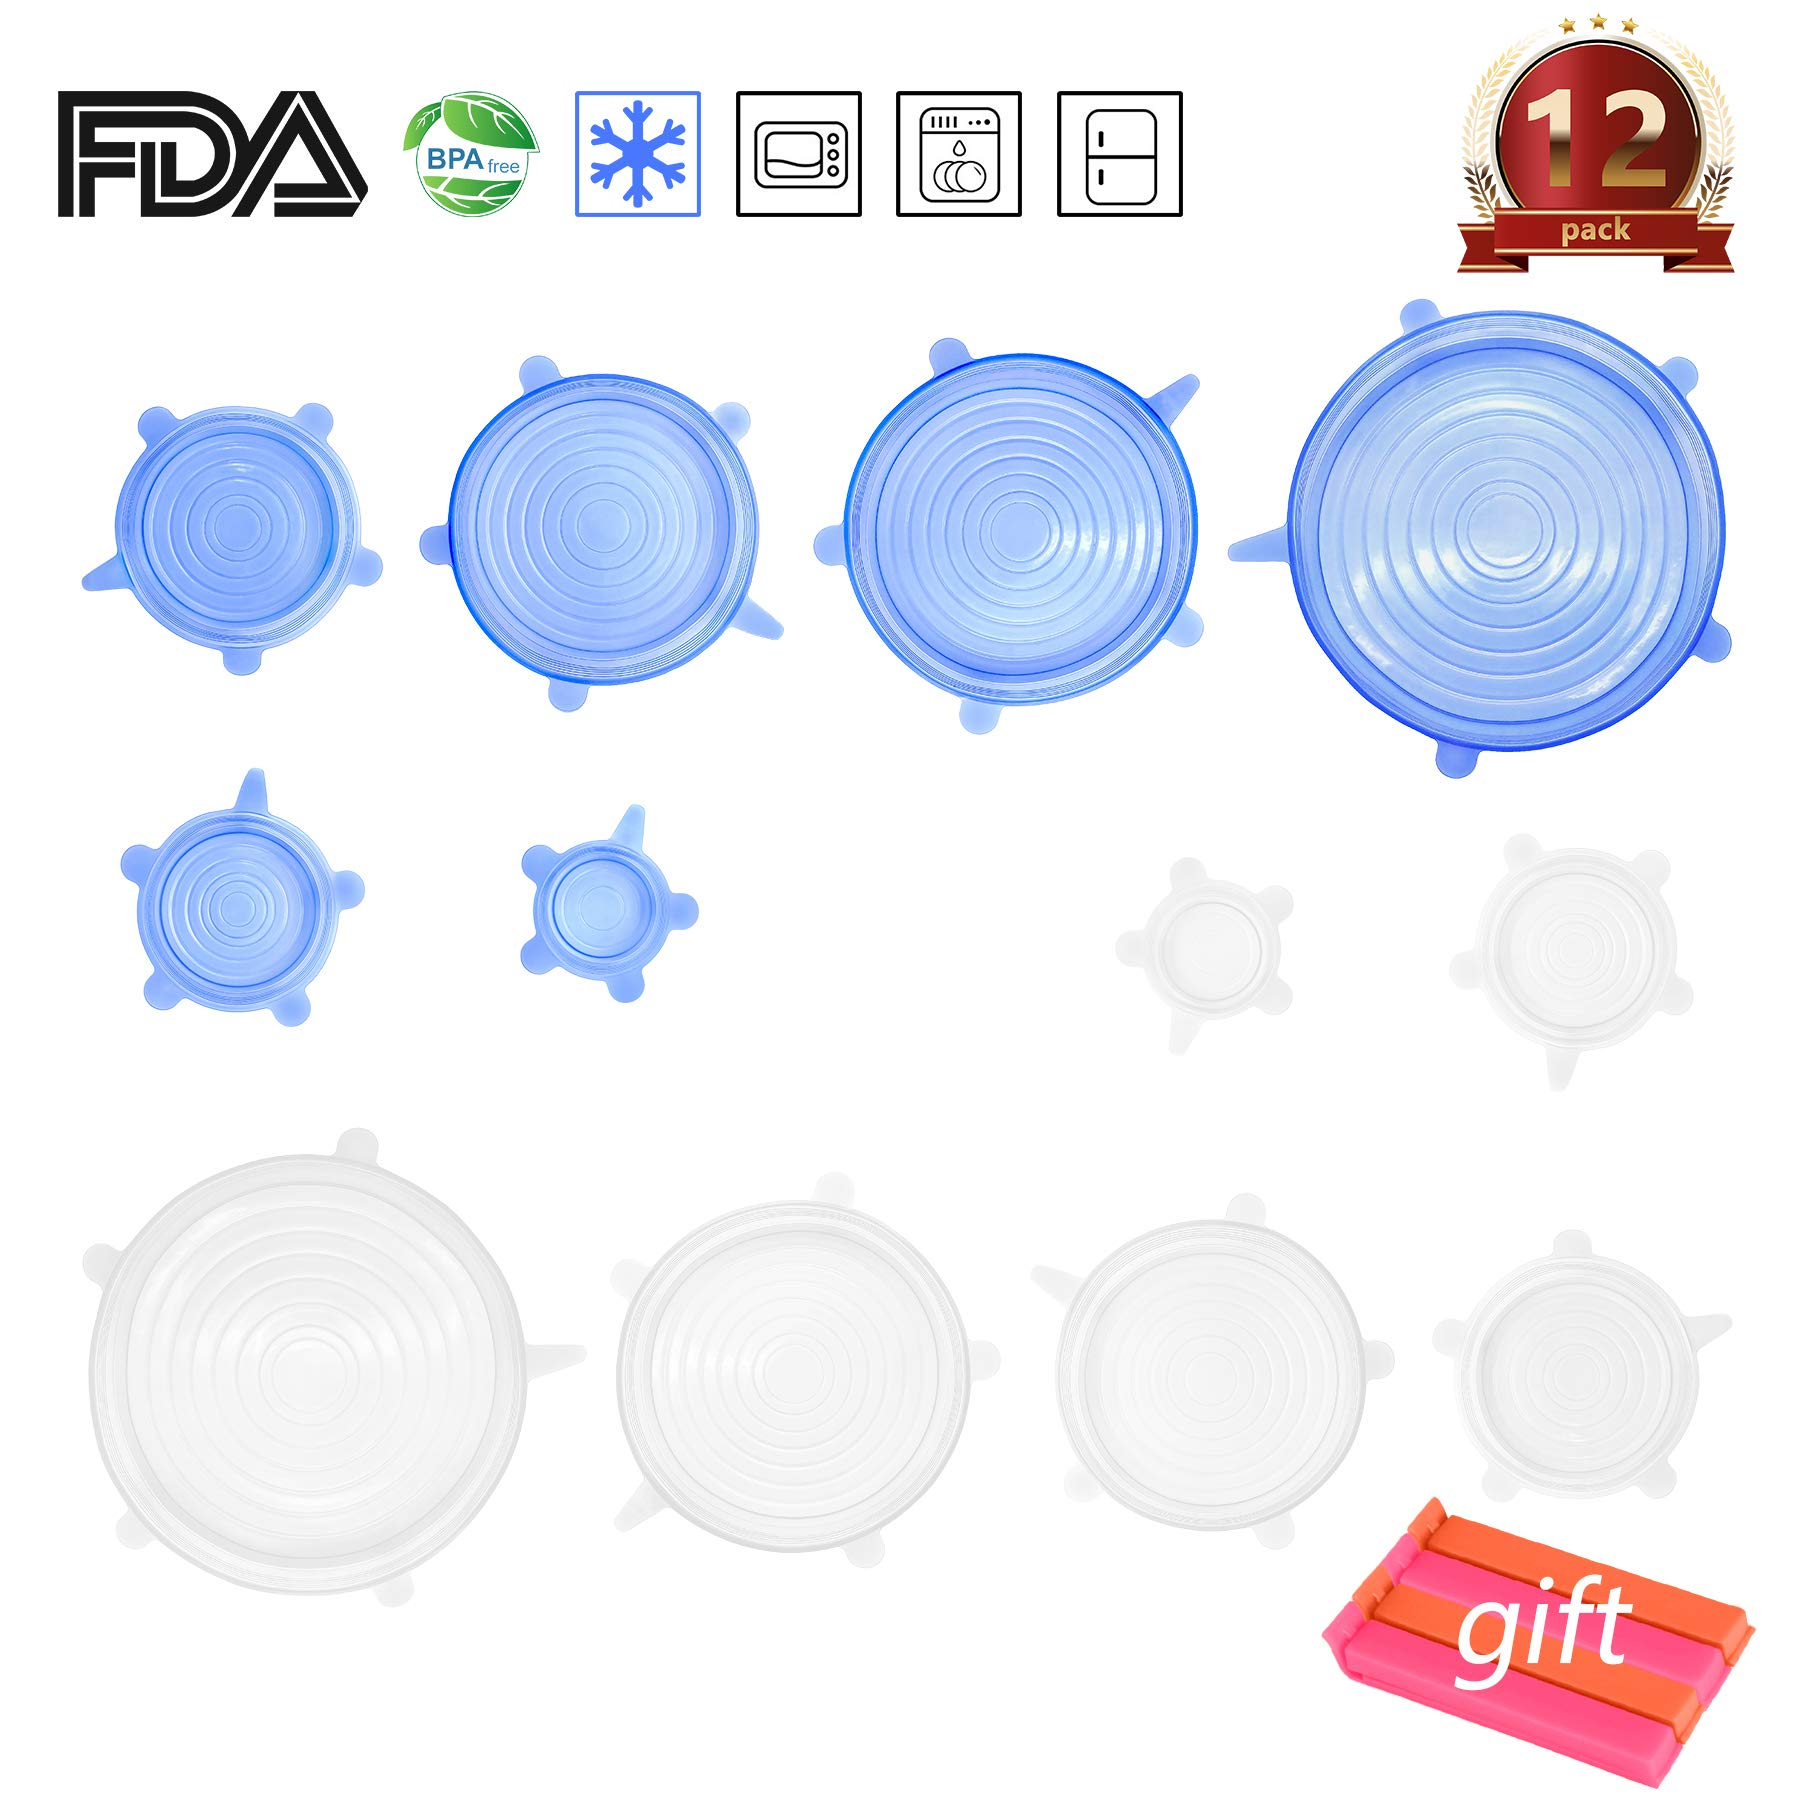 Silicone Stretch Lids, 12 Pack, 2 Colors, 6 Sizes Silicone Food& Leftovers Storage Seal Covers Lids For Bowl,Cup,Pot,Dish,Microwave Oven, Refrigerator, Freezer, 4 Free Food Bag Sealing Clips Included